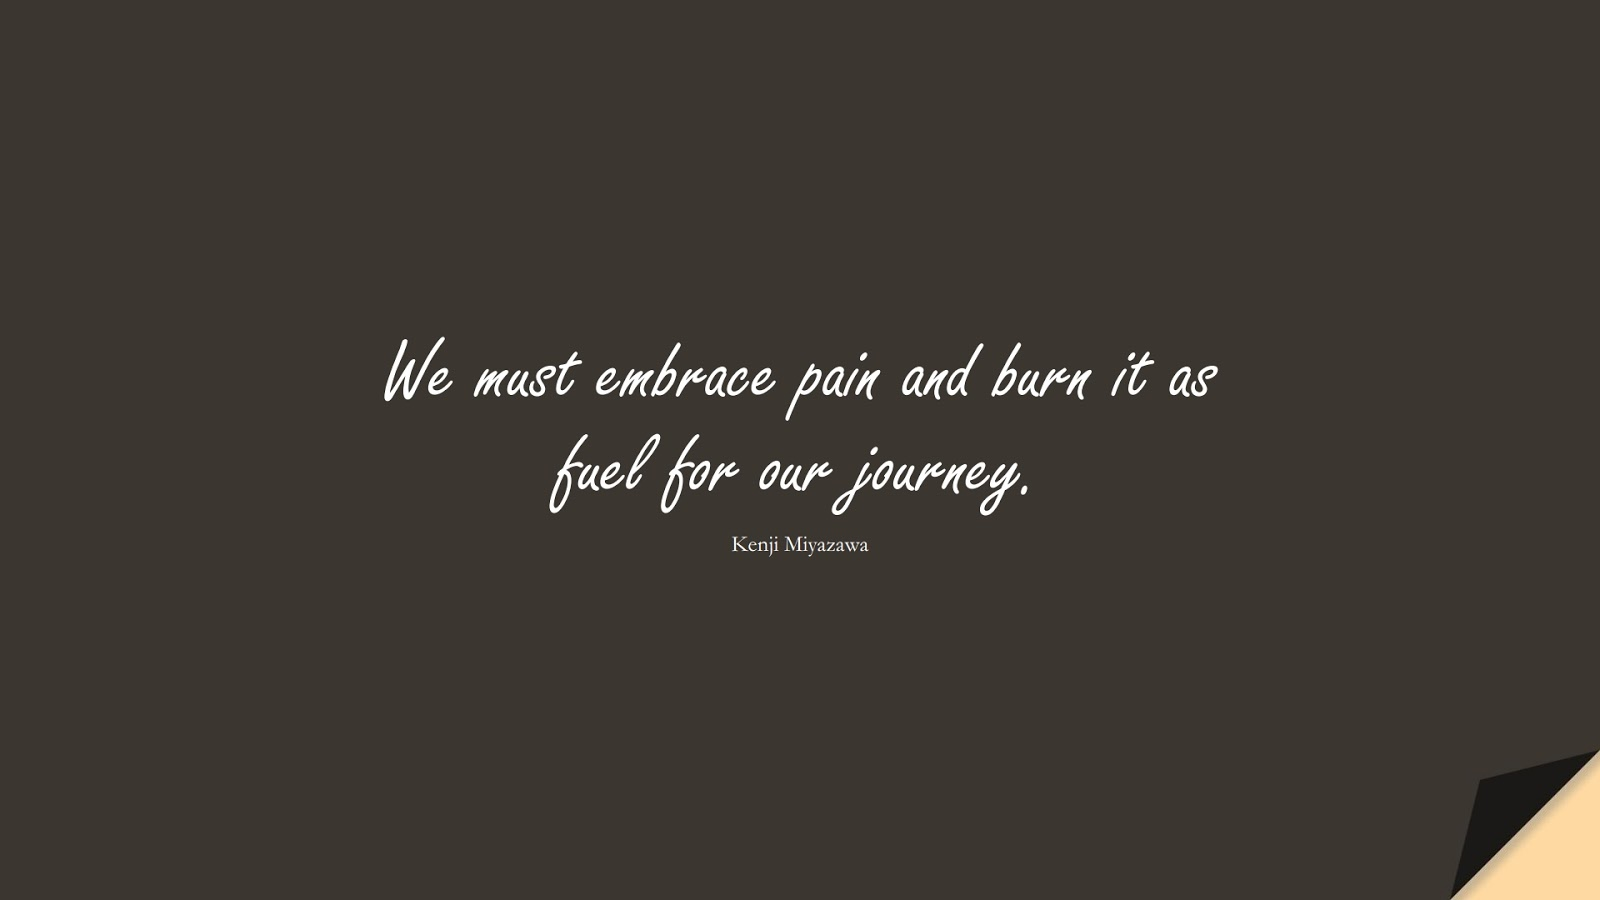 We must embrace pain and burn it as fuel for our journey. (Kenji Miyazawa);  #PositiveQuotes